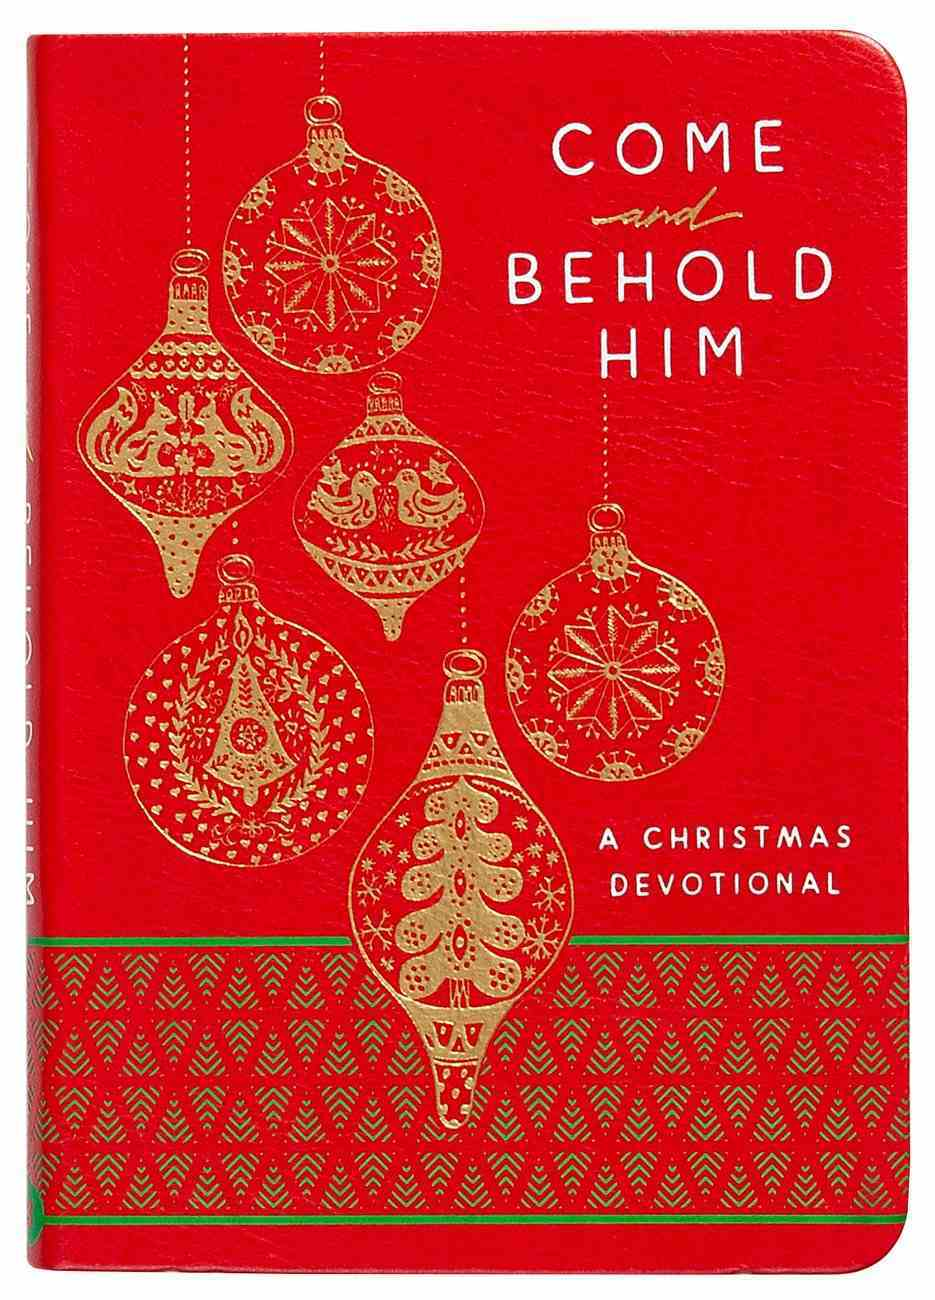 Come and Behold Him: A Christmas Devotional Imitation Leather